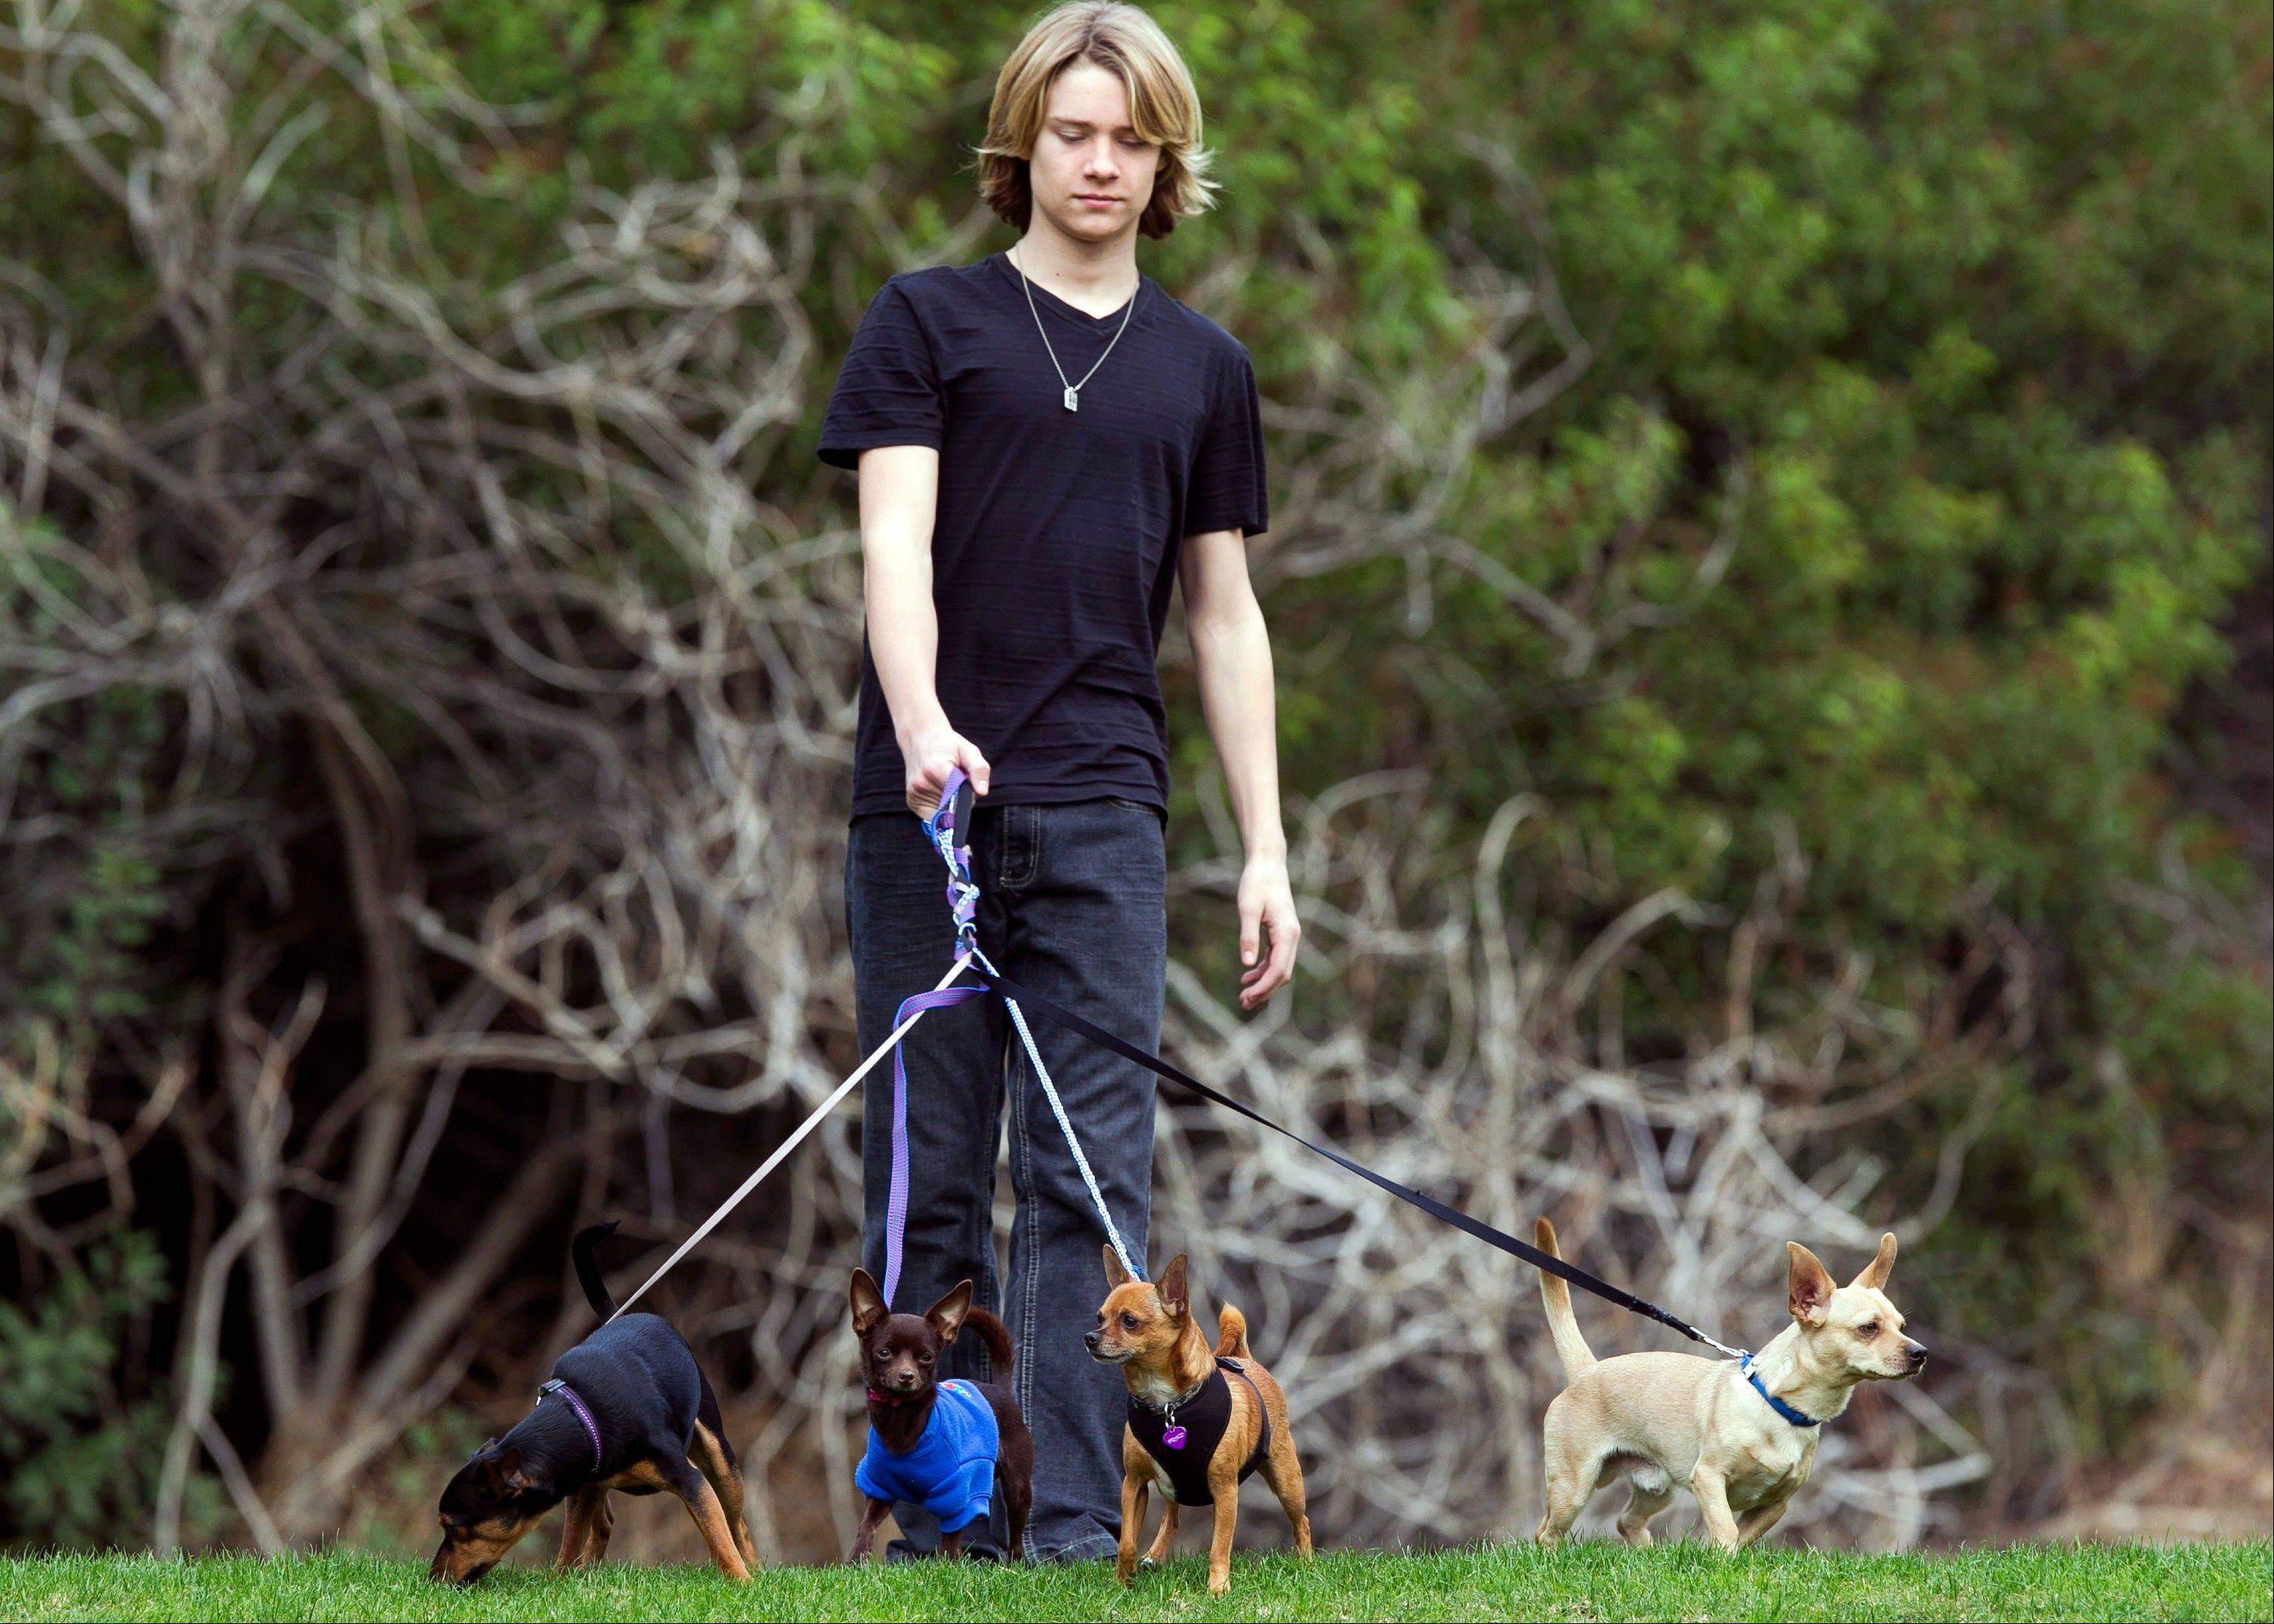 Actor and singer Lou Wegner, the founder of Kids Against Animal Cruelty, with his rescued dogs, from left, Kippy, Pearl, Draco and Henry in Burbank, Calif.